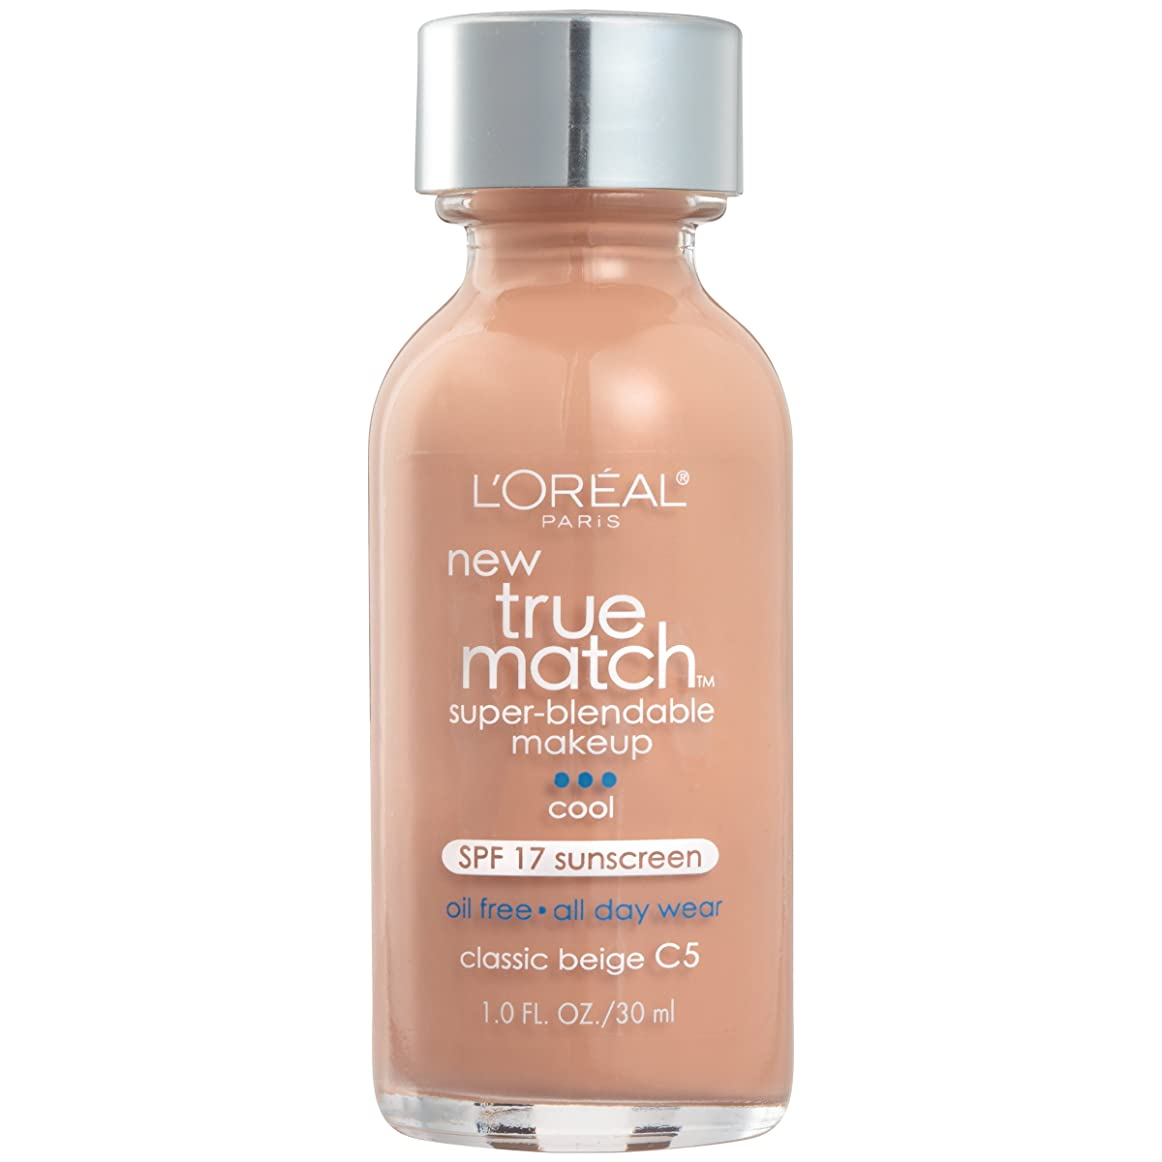 スクリーチ傭兵料理L'OREAL TRUE MATCH SUPER-BLENDABLE MAKEUP #C5 CLASSIC BEIGE